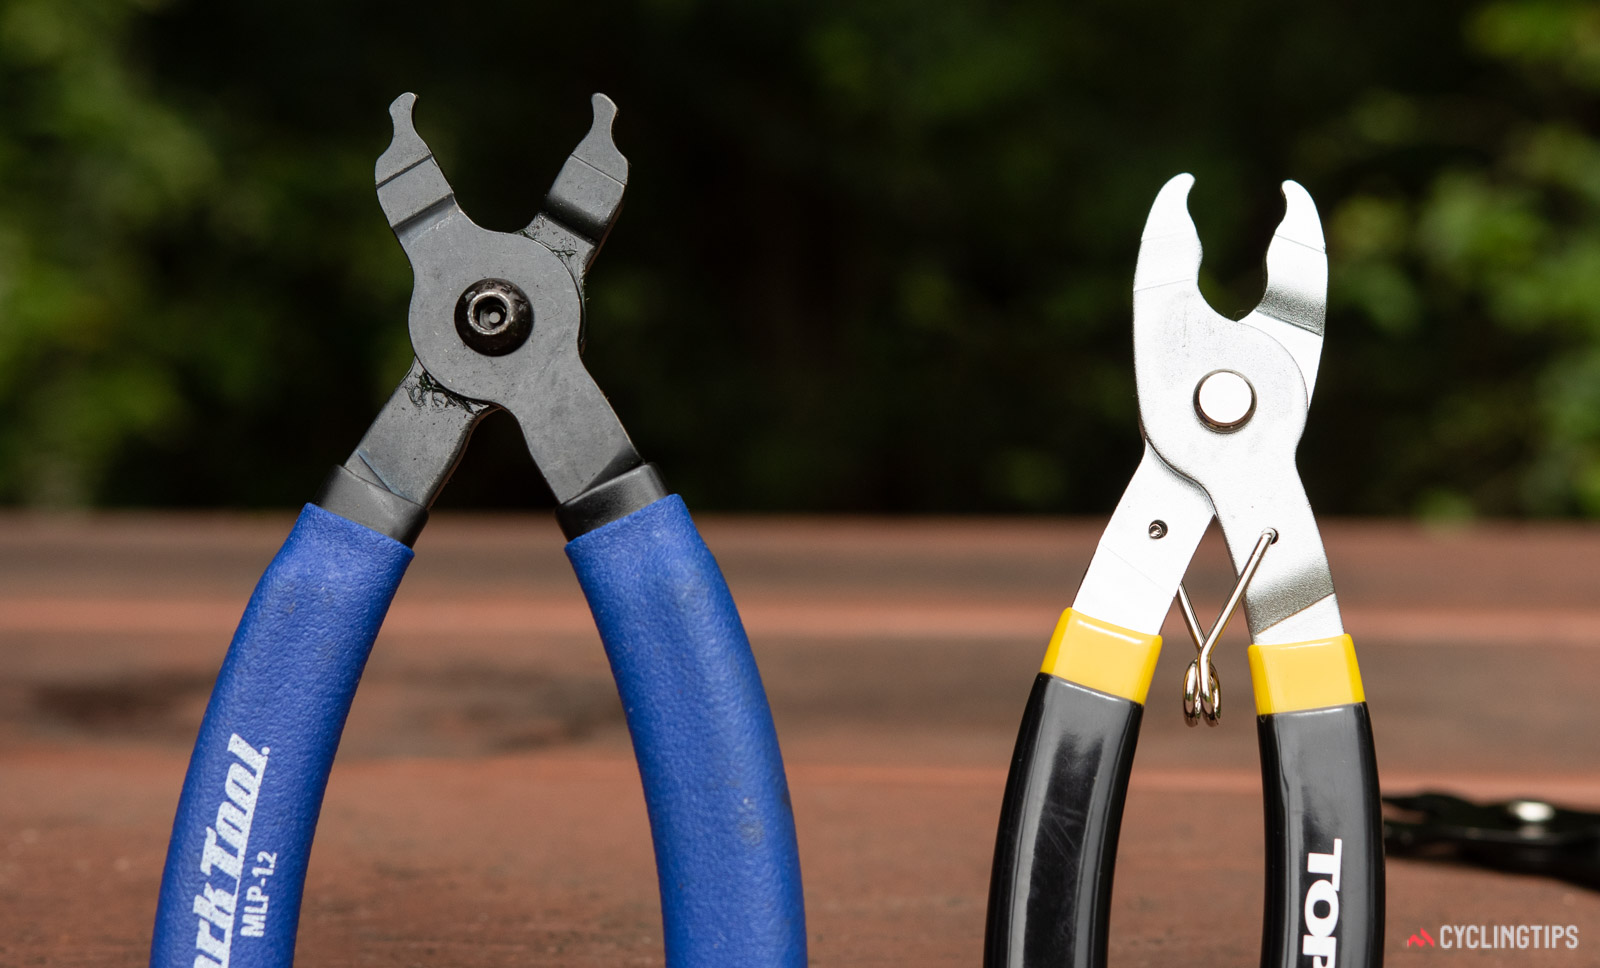 Master link plier tools - Park tool and Topeak